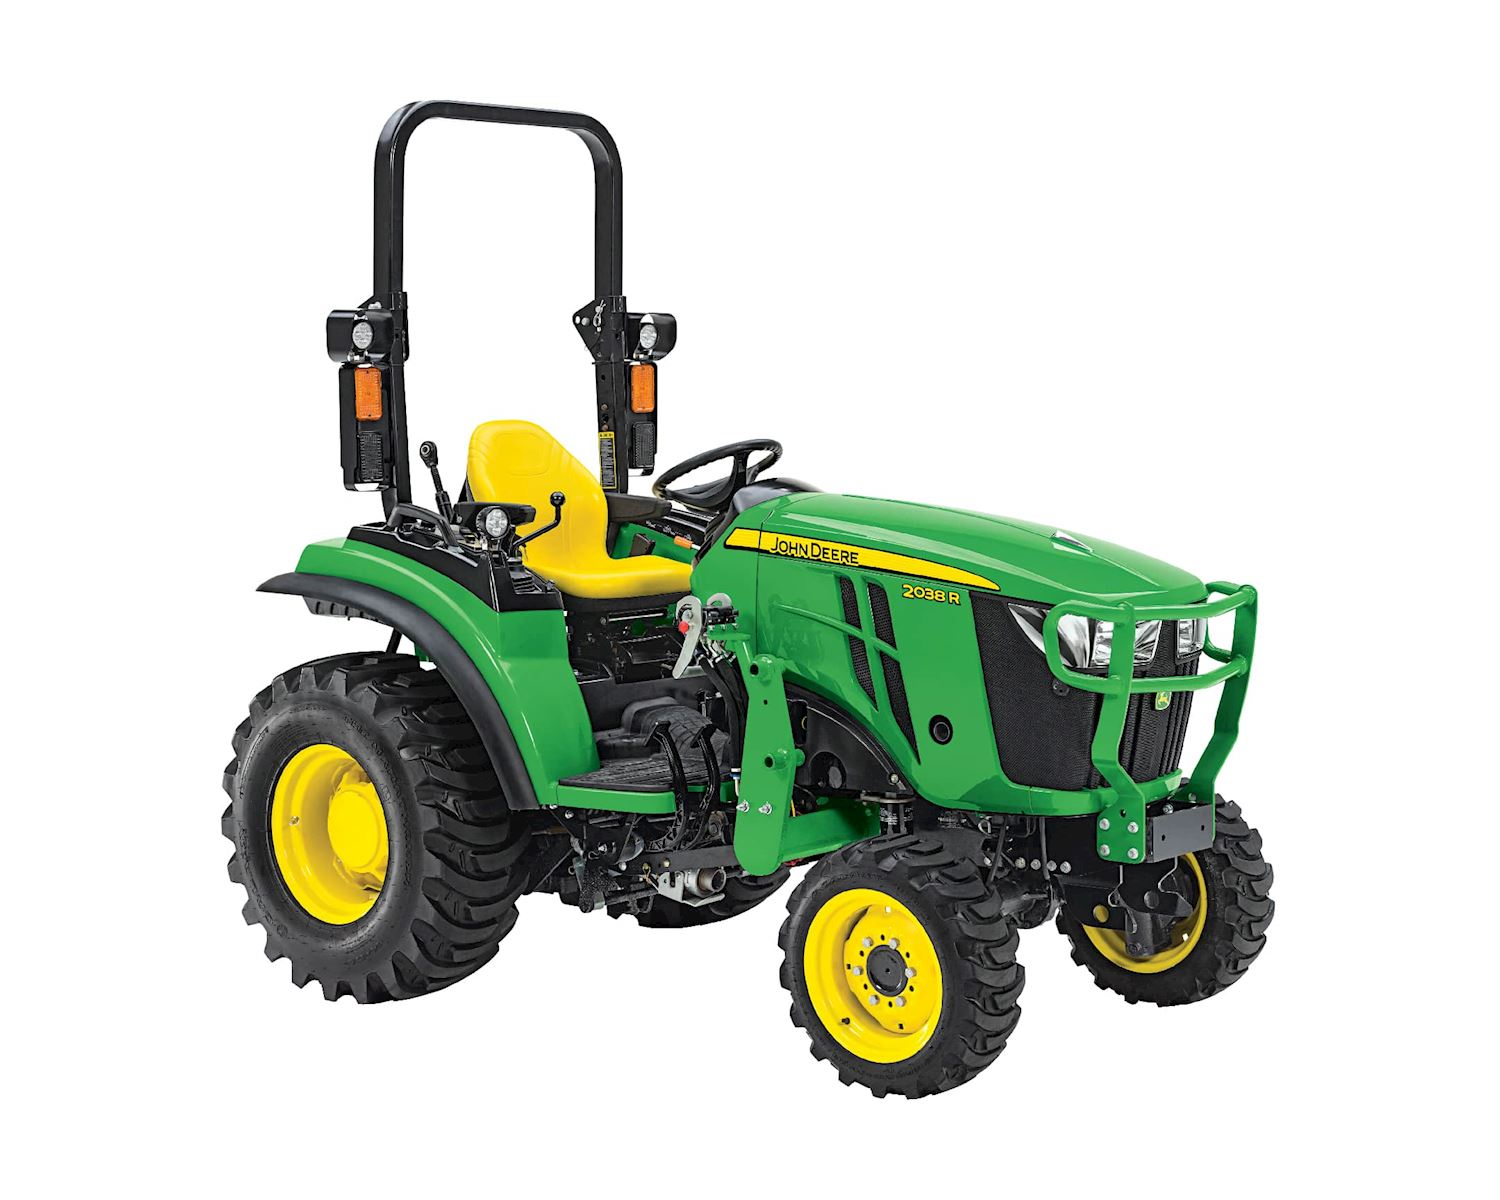 2 series john deere compact tractor for sale